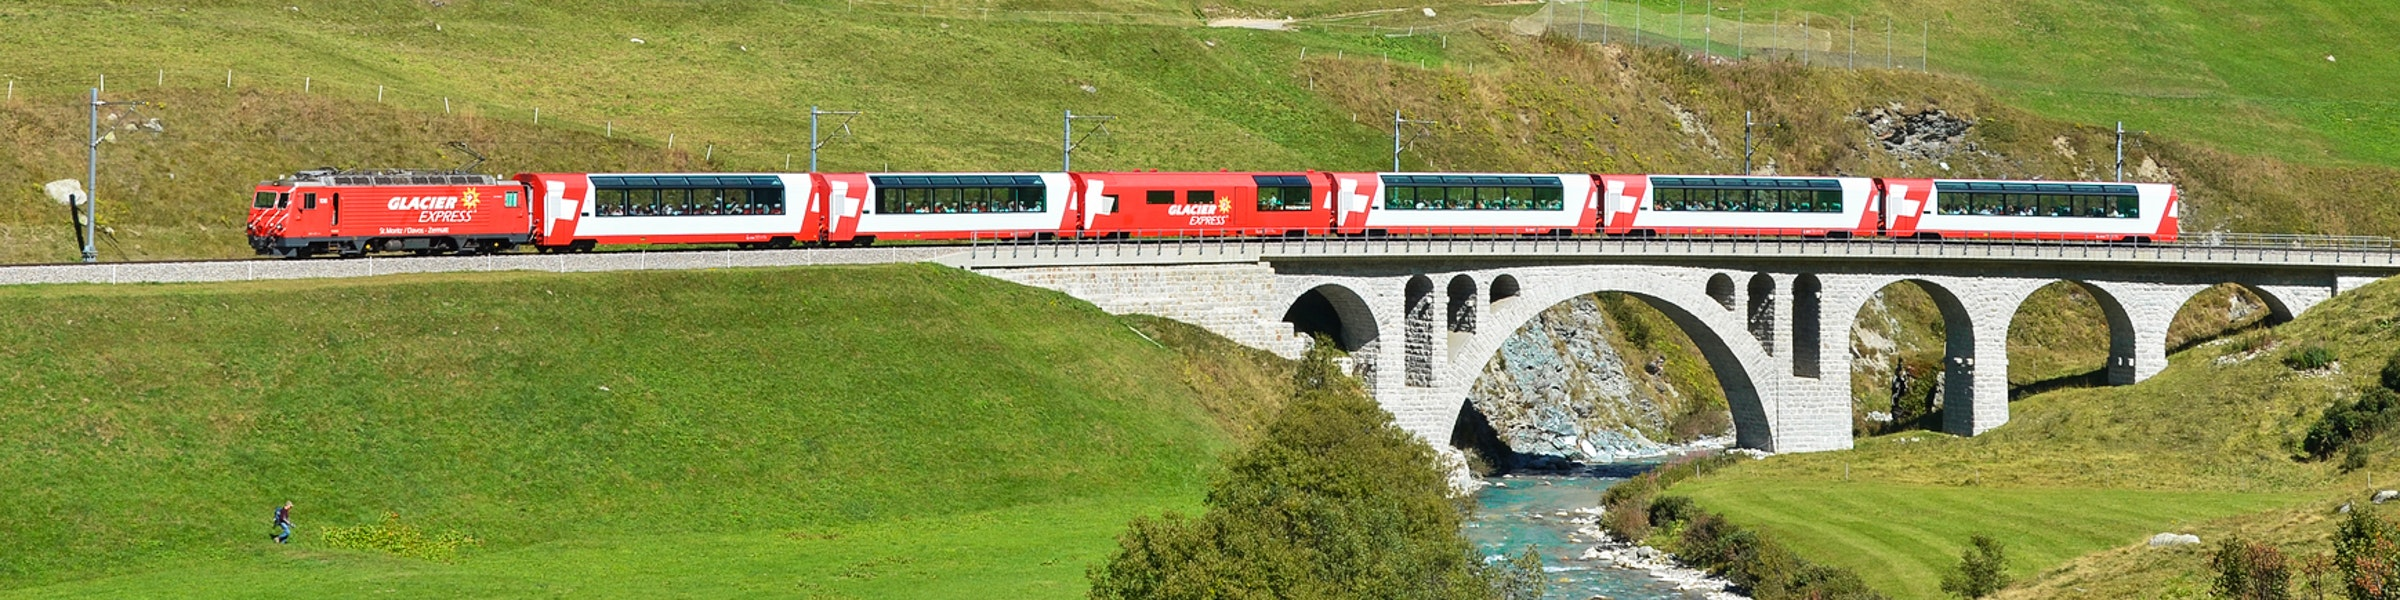 Glacier Express near Hospental